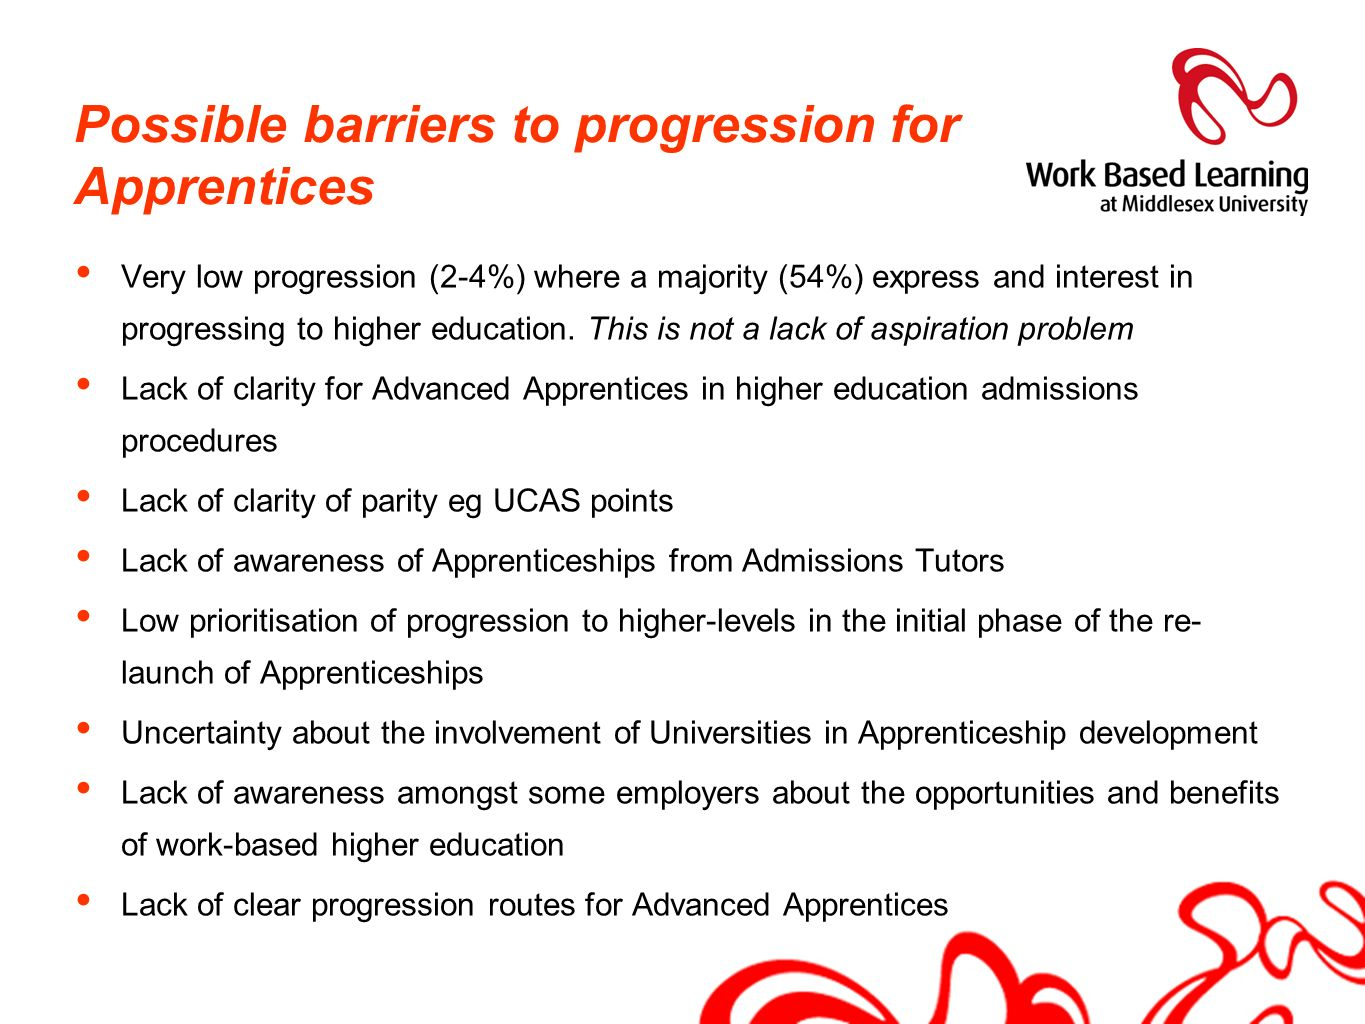 Possible barriers to progression for Apprentices